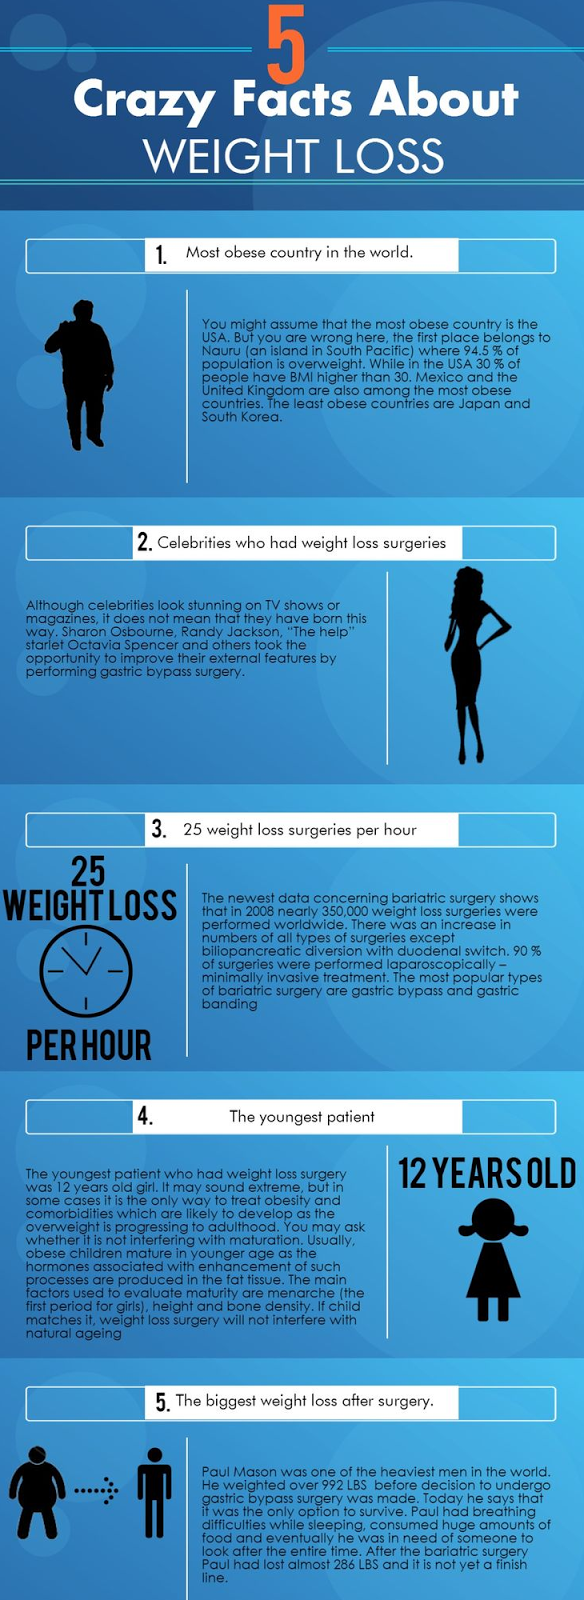 5 Crazy Facts About Weight Loss Surgery